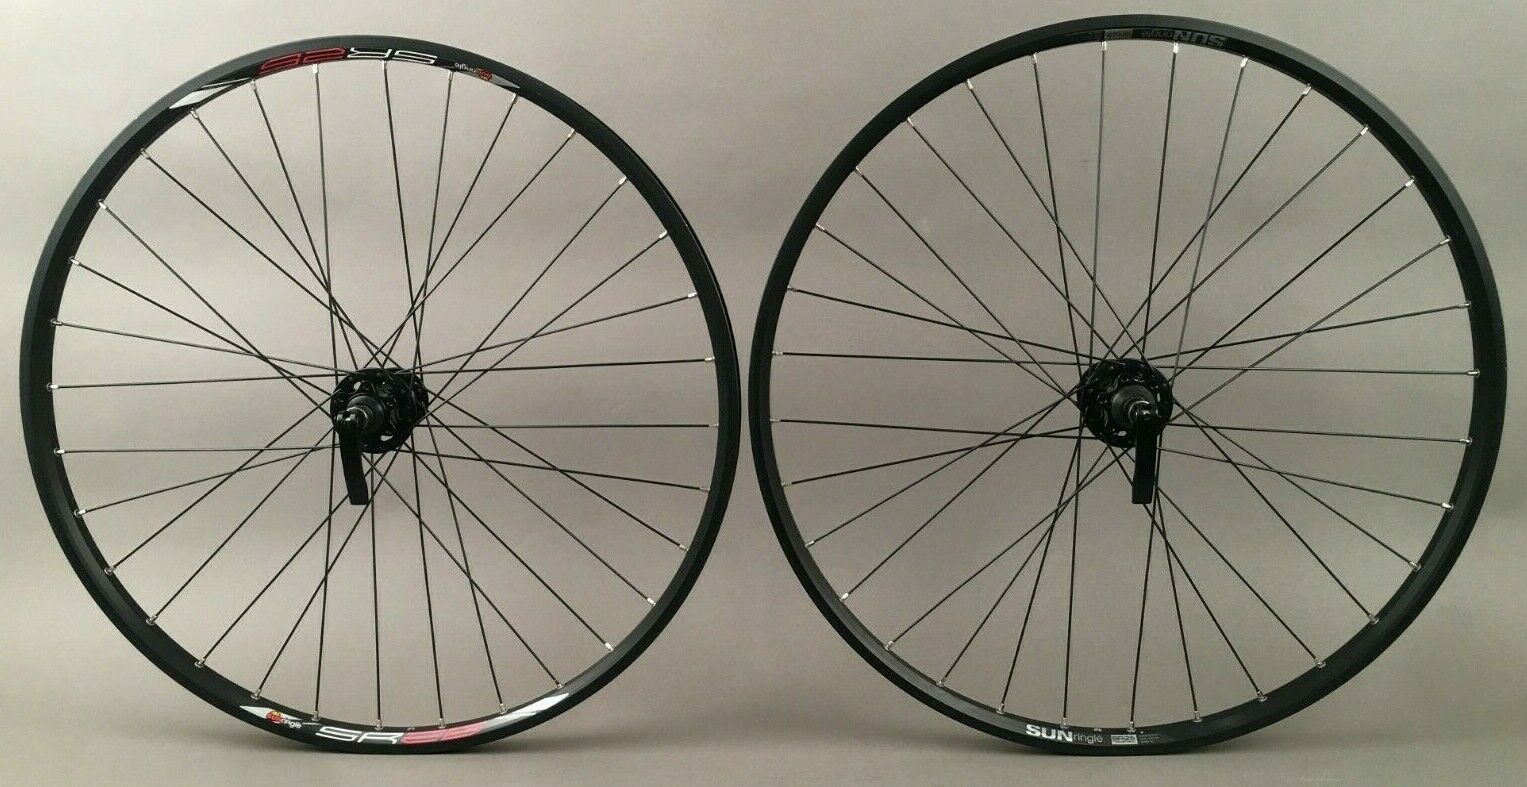 "Sun Ringle SR25 Mountain Bike Wheelset 26"" Quick Release"